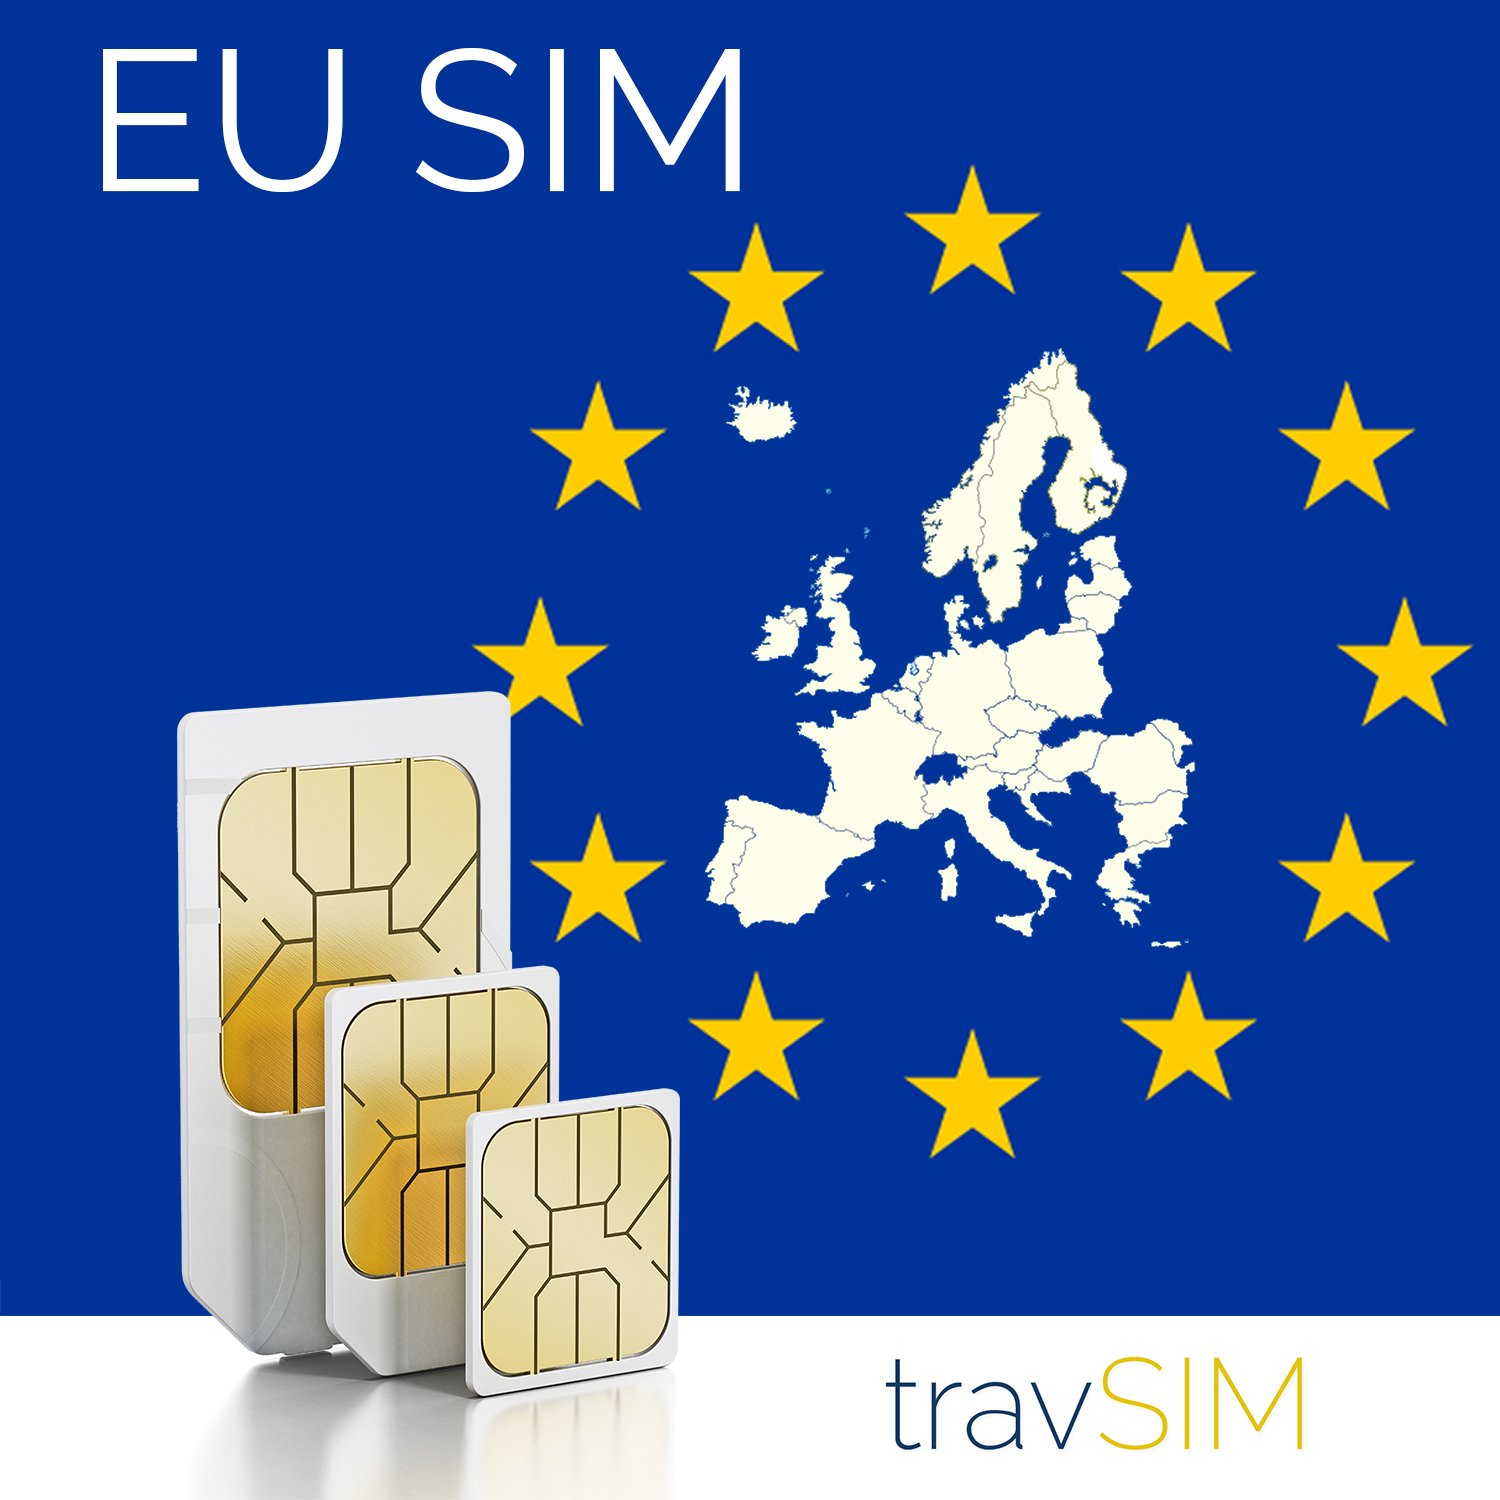 Prepaid 3UK SIM Card for The United Kingdom with 12 GB Data Valid for 30 Days (3G/4G Internet Speed and Includes Unlimited Calling Minutes and Text Messages for Local use Within The United Kingdom) by travsim